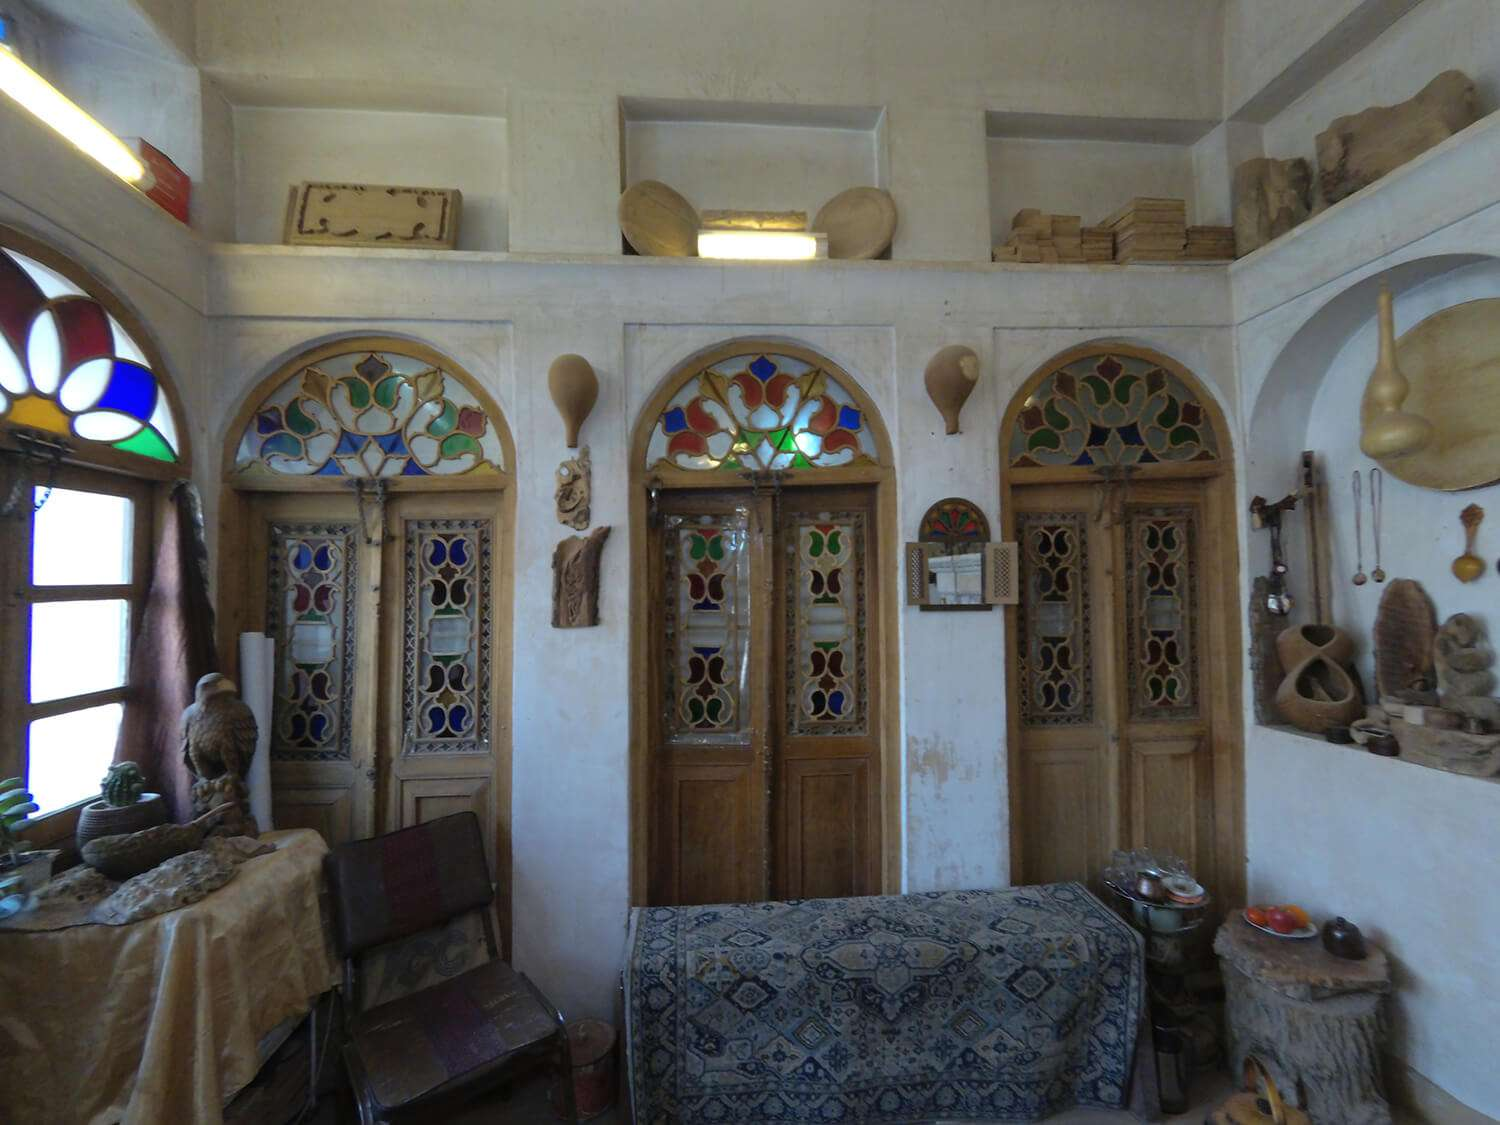 The Passage through Handicrafts' Paradise in the Oldest Neighborhood of Isfahan